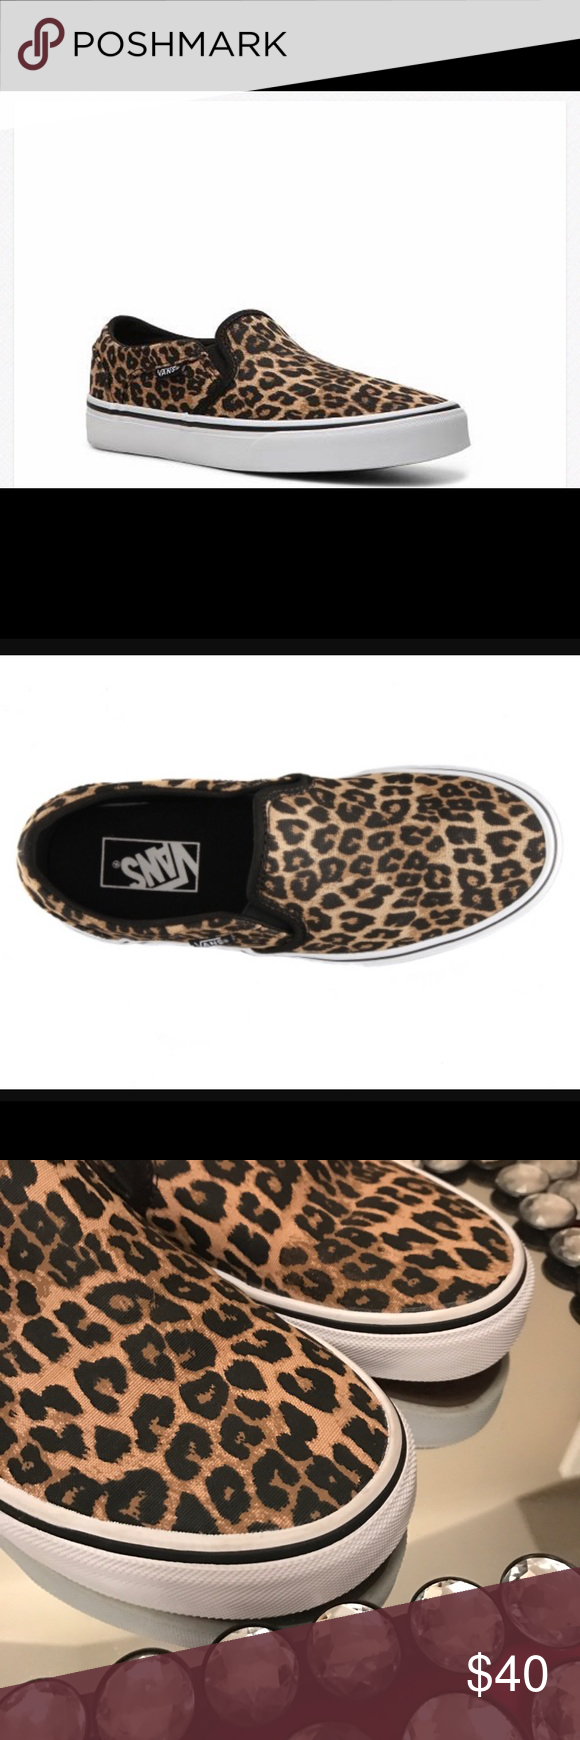 e364e3a41375 Vans💋leopard print Vans Asher Canvas leopard slip on sneakers .....like  new condition only worn twice Vans Shoes Sneakers